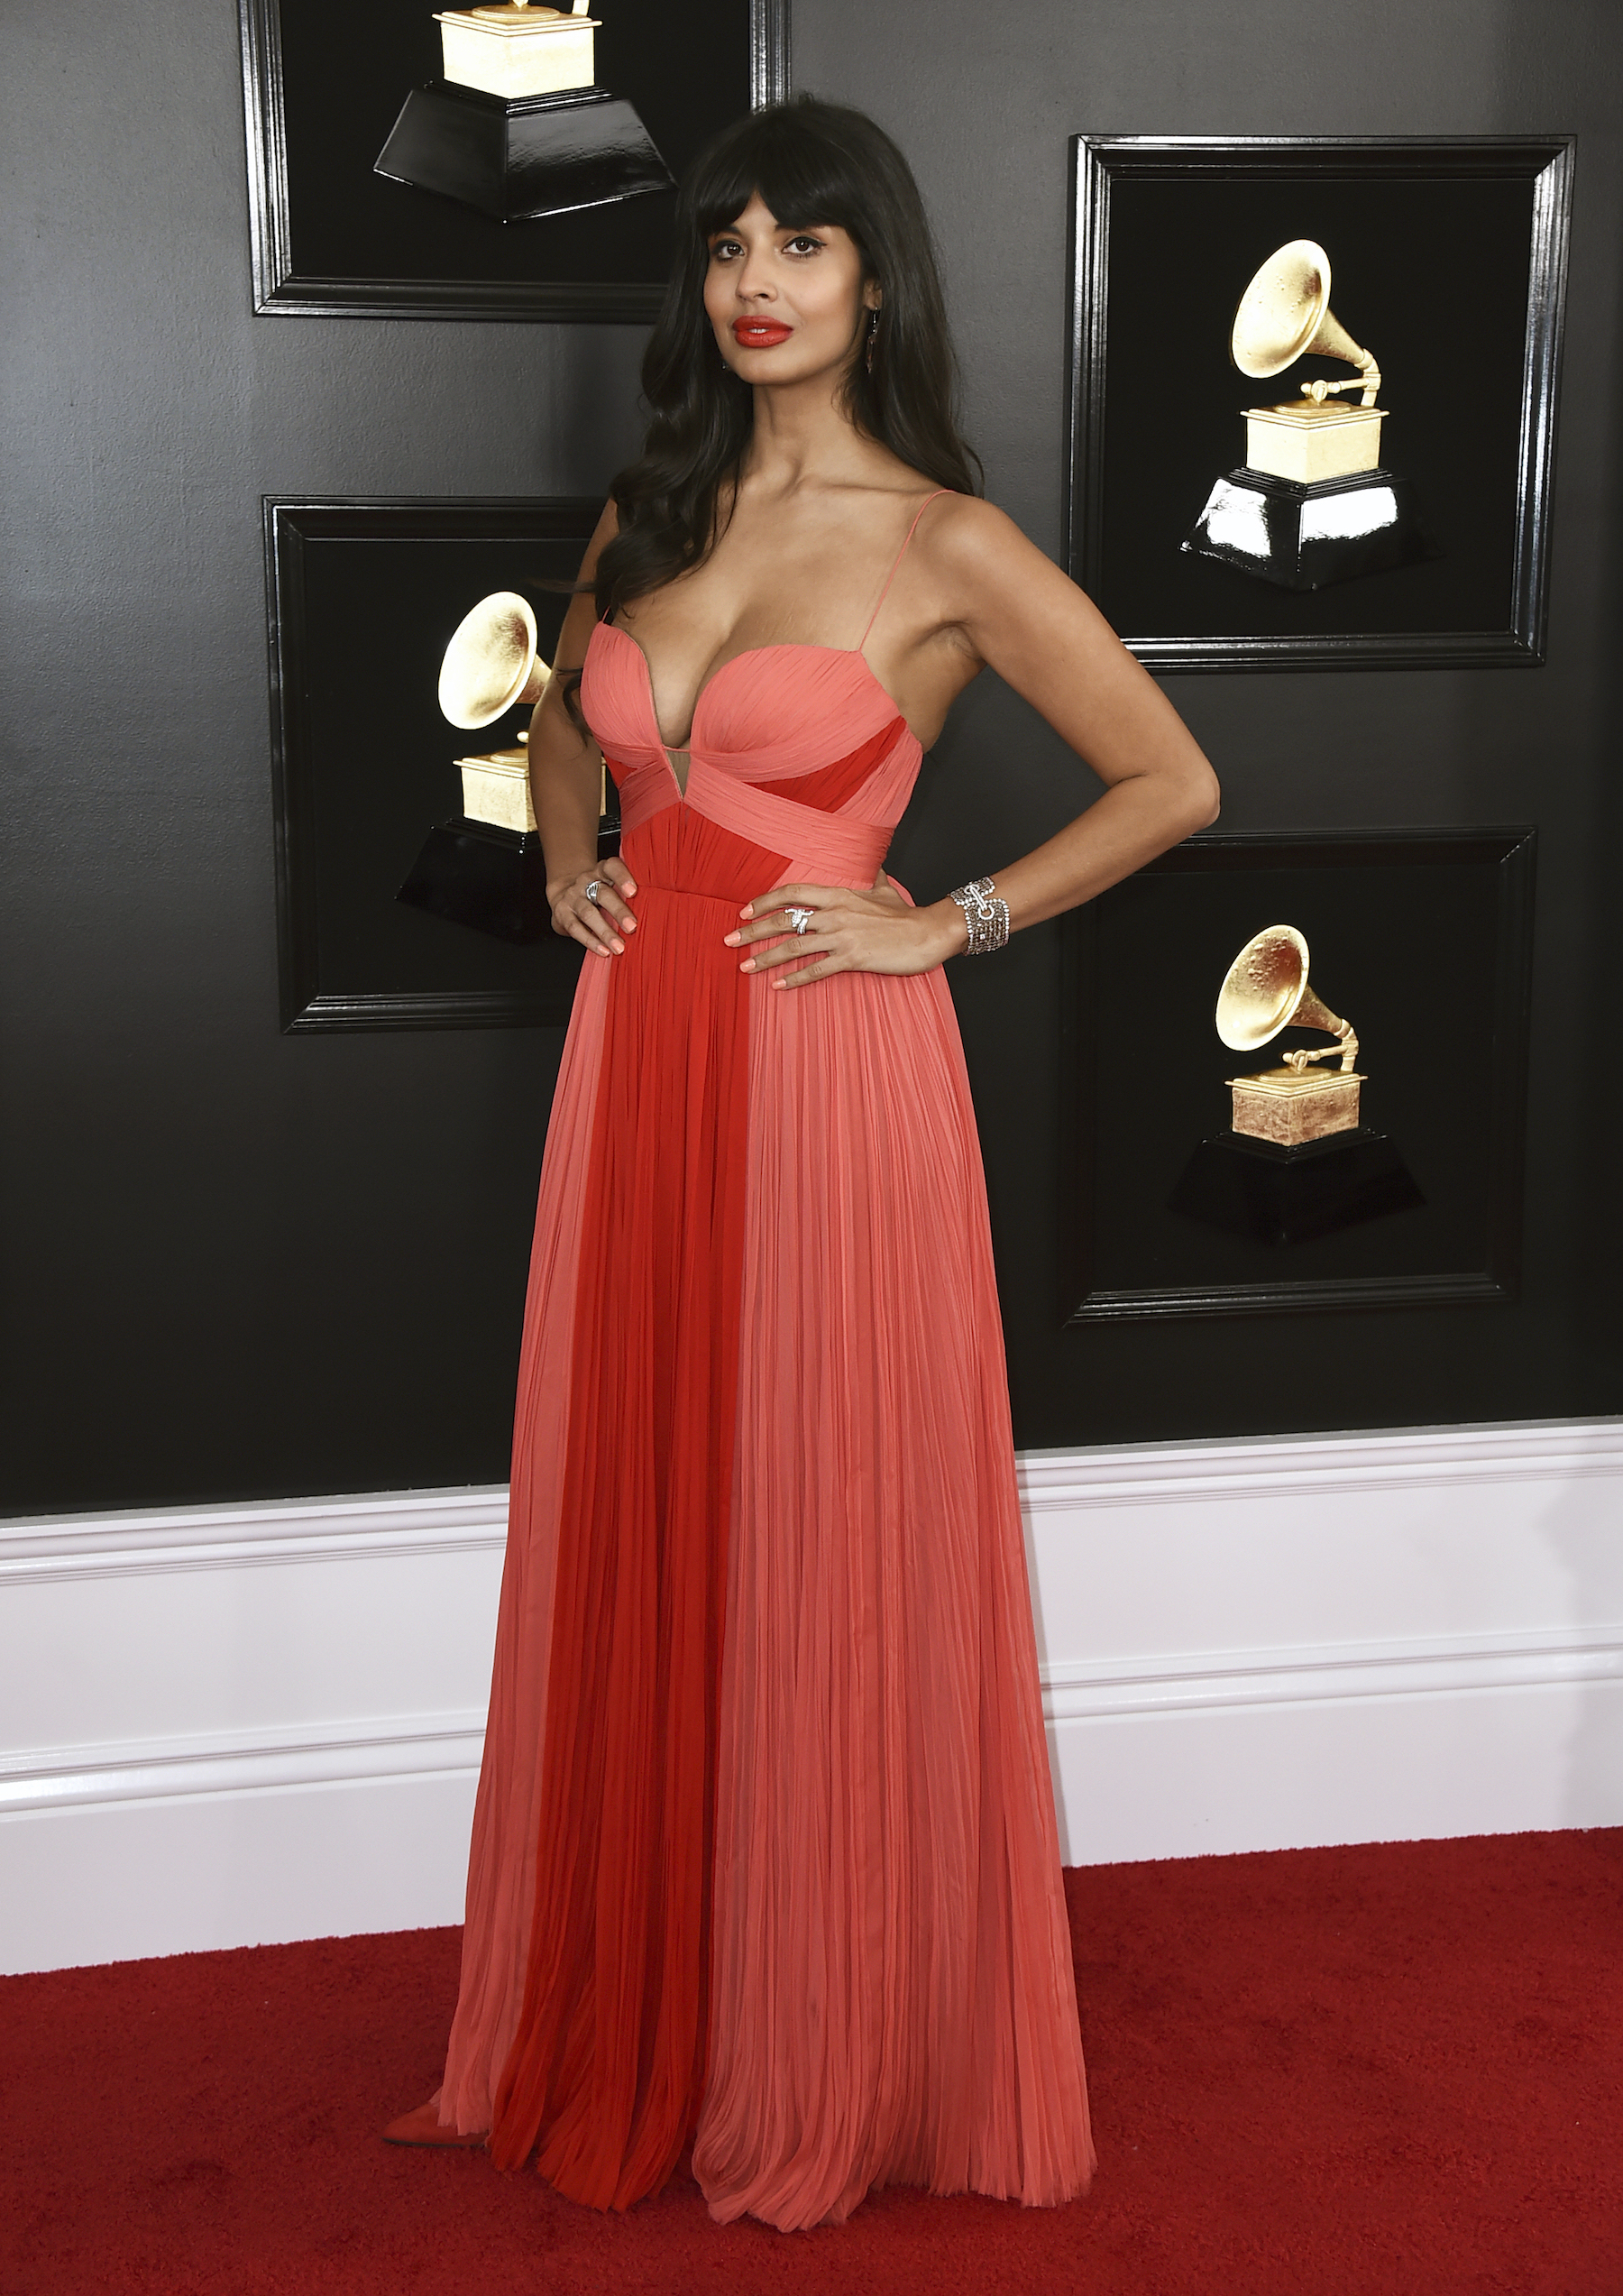 "<div class=""meta image-caption""><div class=""origin-logo origin-image ap""><span>AP</span></div><span class=""caption-text"">Jameela Jamil arrives at the 61st annual Grammy Awards at the Staples Center on Sunday, Feb. 10, 2019, in Los Angeles. (Jordan Strauss/Invision/AP)</span></div>"